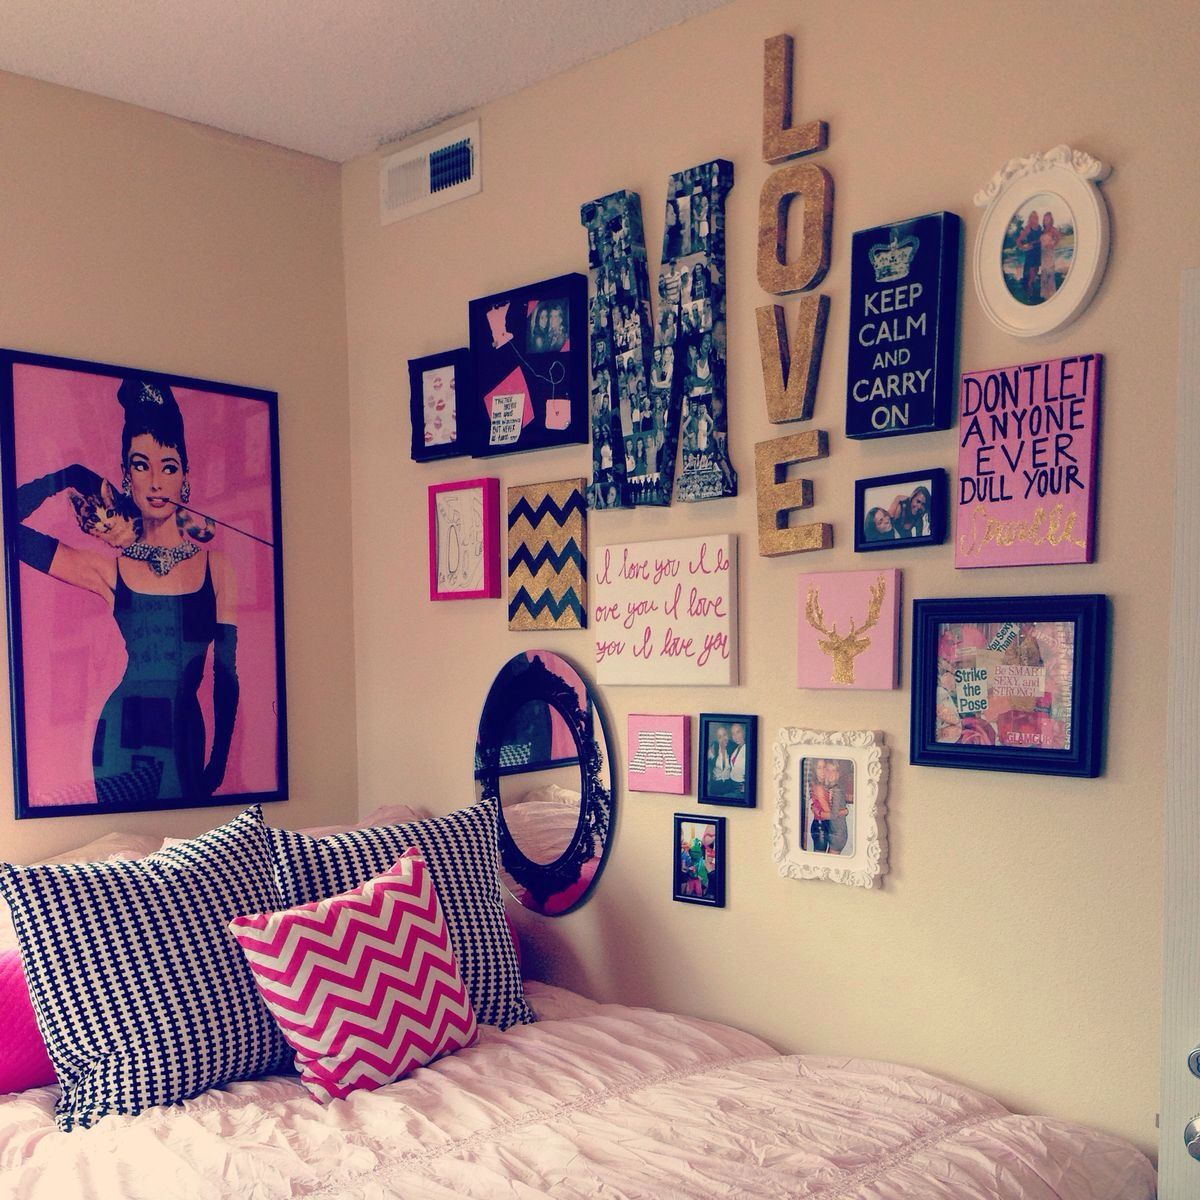 Love it | Interior design | Pinterest | Dorm, Wall ideas and College